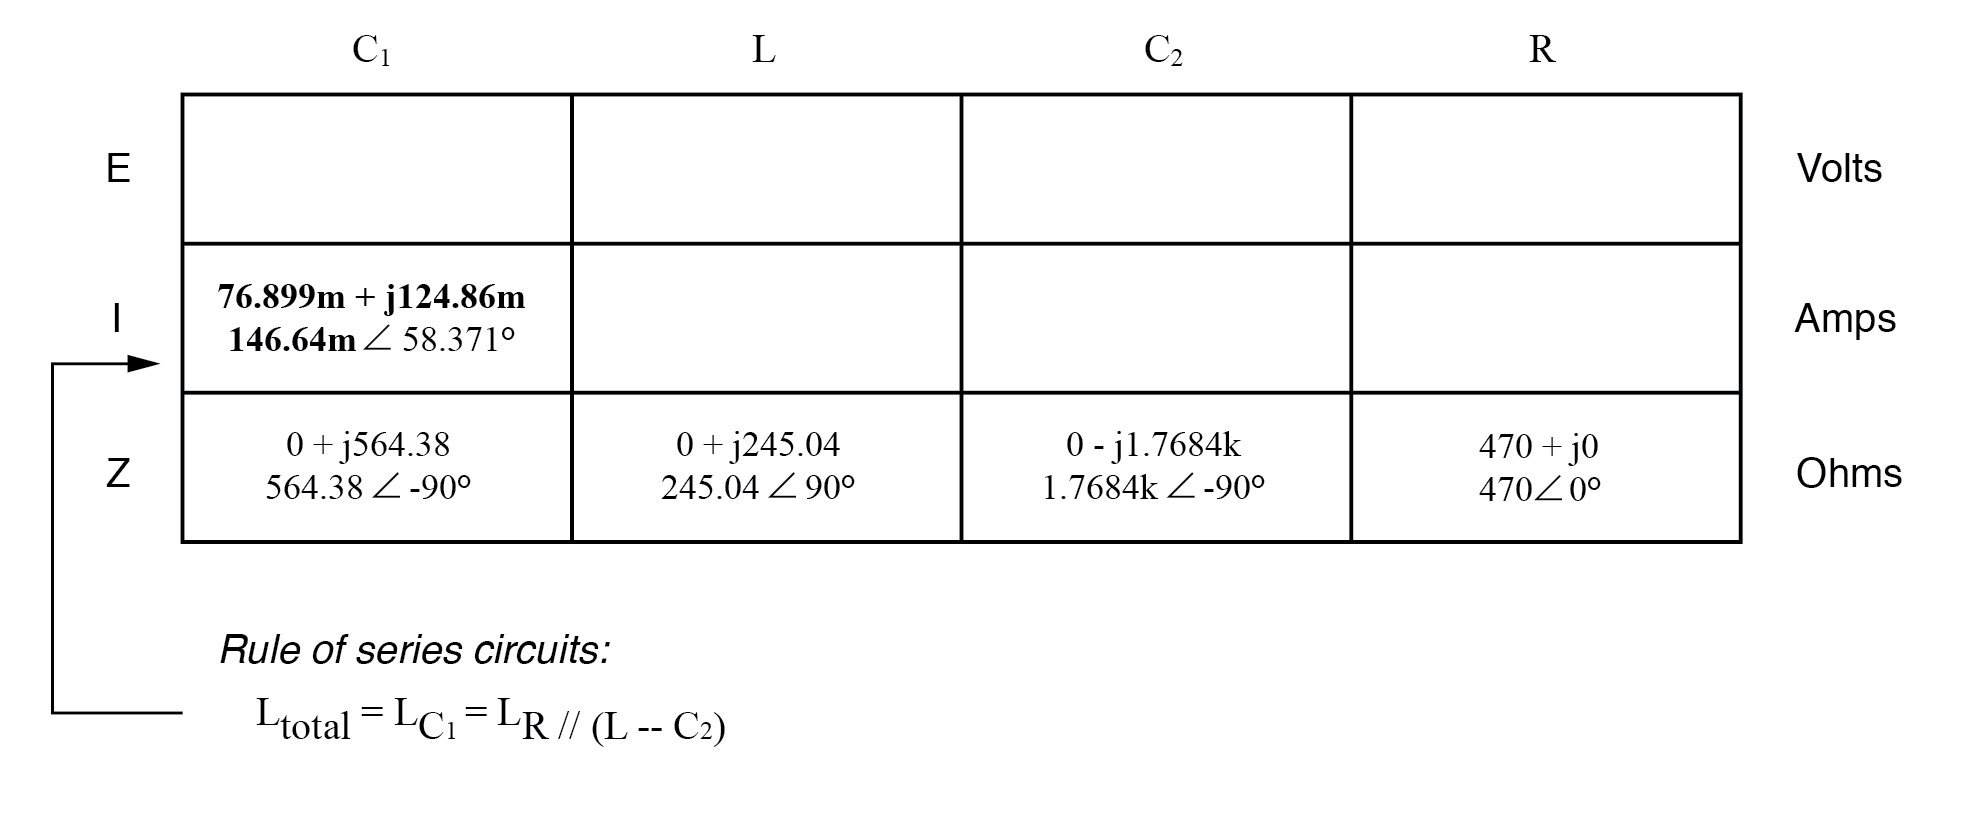 initial values in table 5